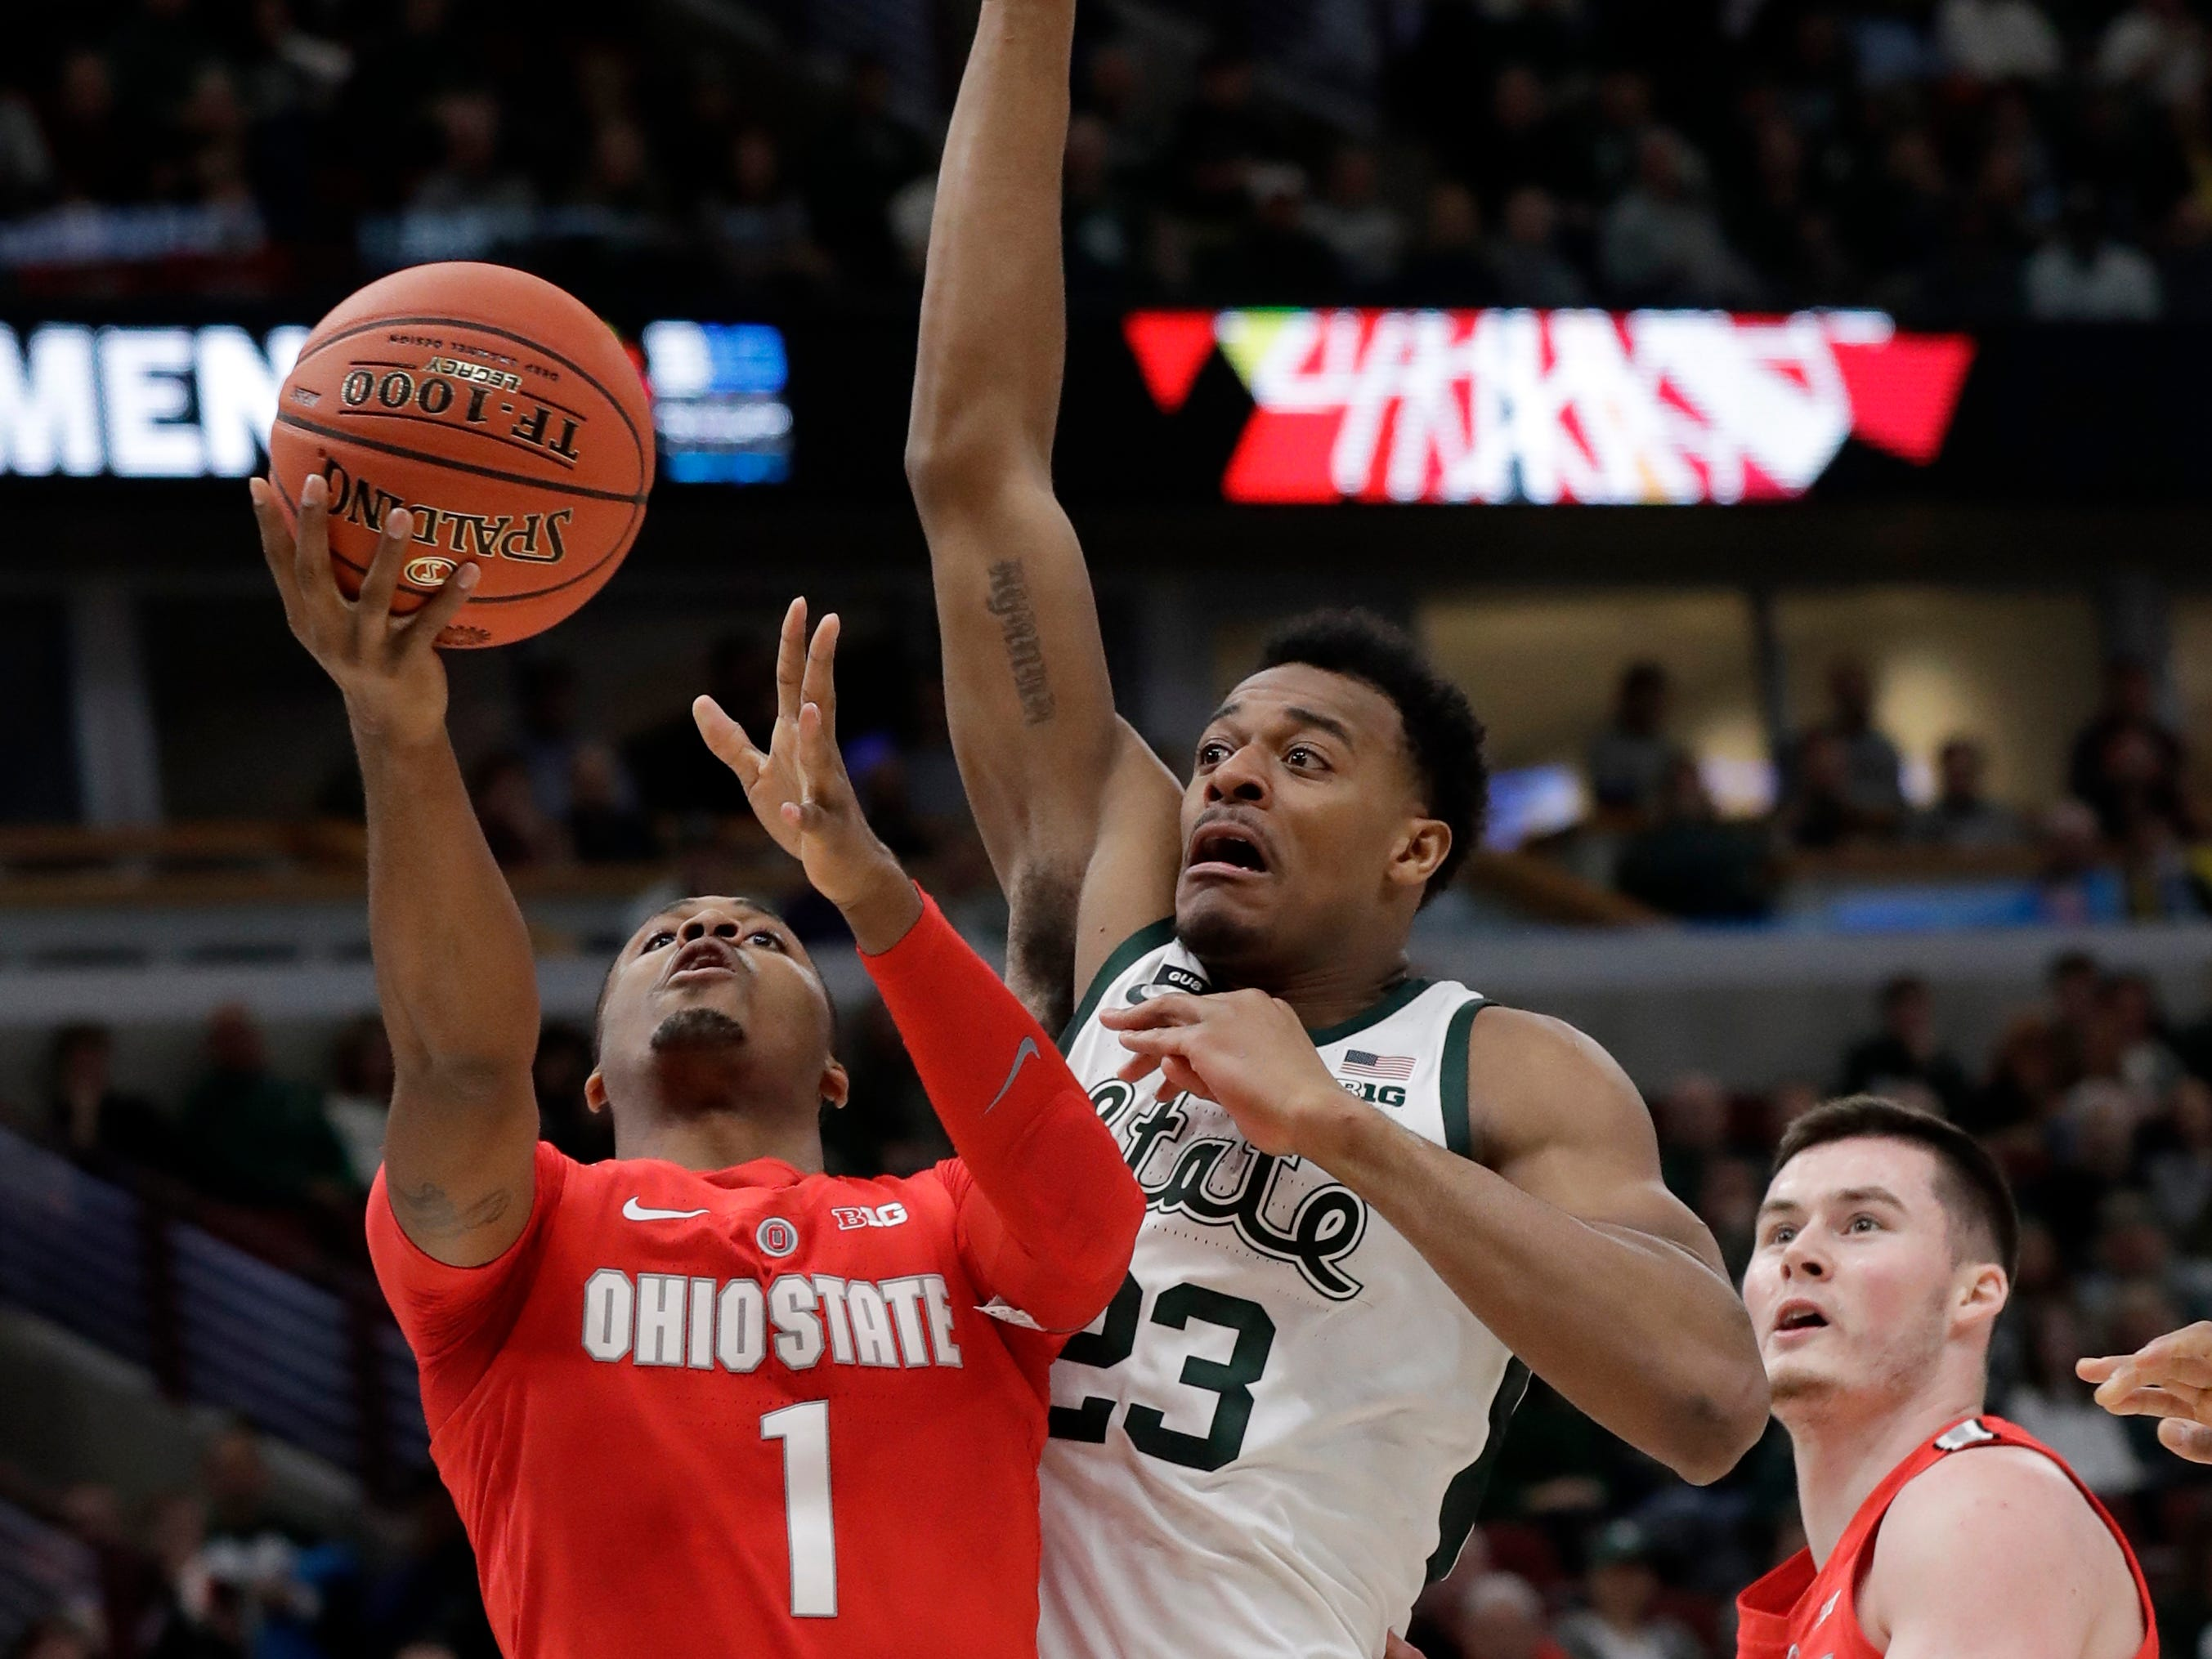 Ohio State's Luther Muhammad (1) takes a shot against Michigan State's Xavier Tillman (23) during the first half.